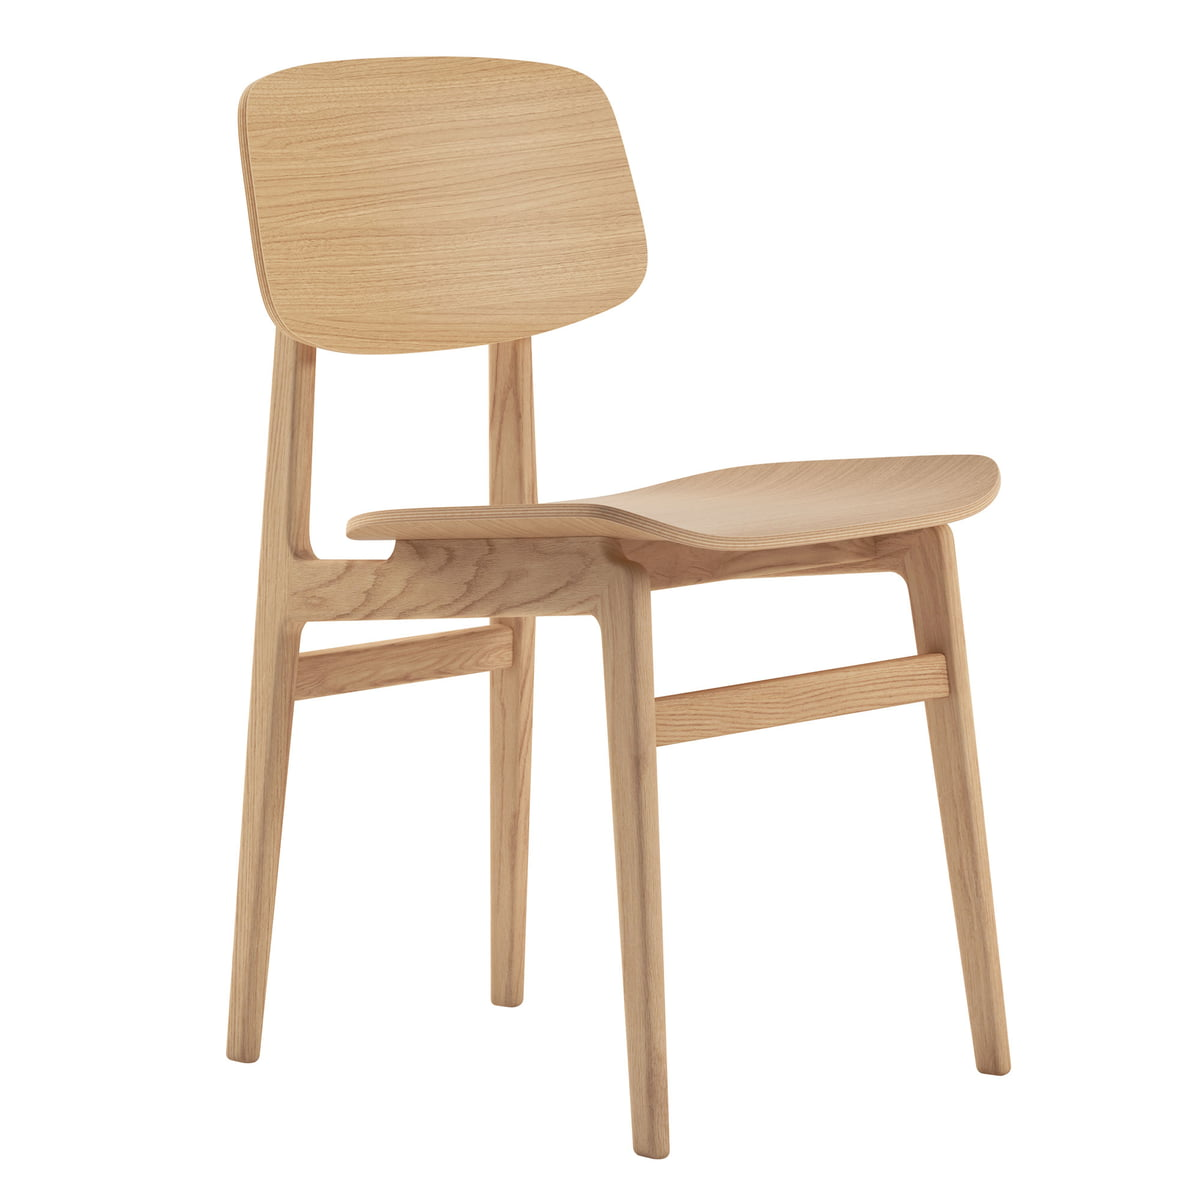 Norr11 Ny11 Dining Chair Eiche Natur